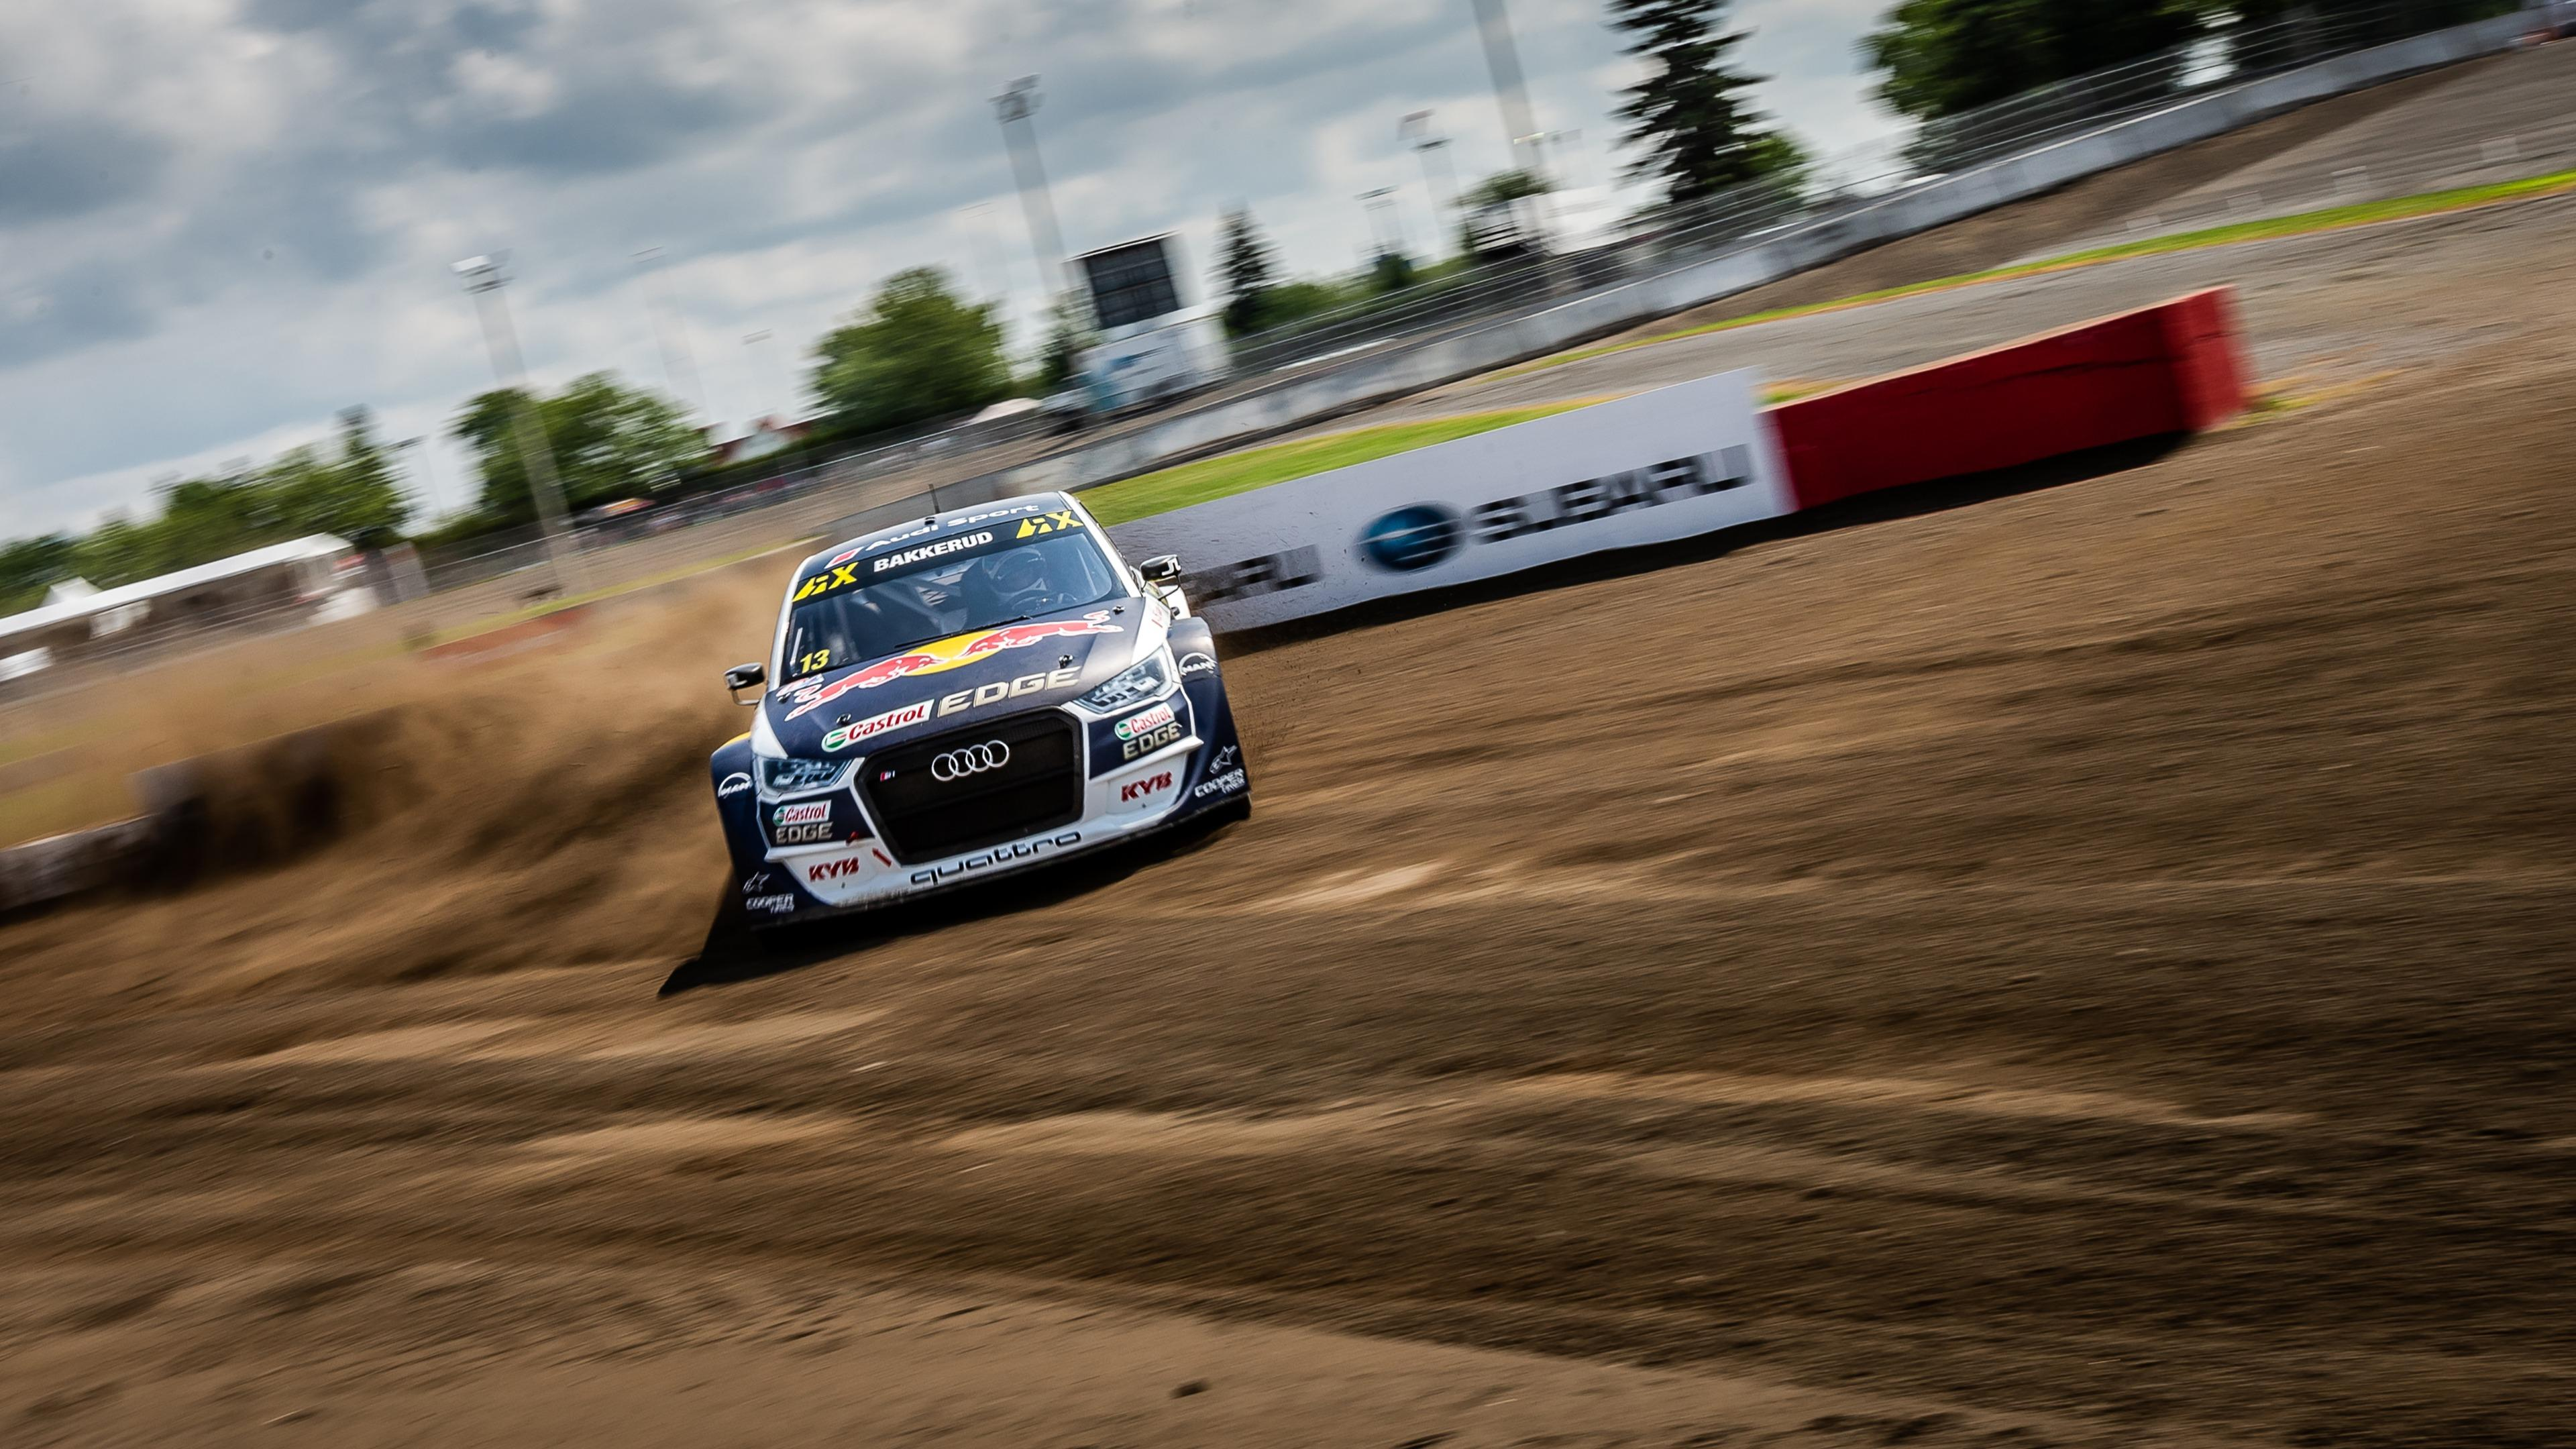 Audi S1 of Andreas Bakkerud at the 2018 World RX of Canada wallpaper